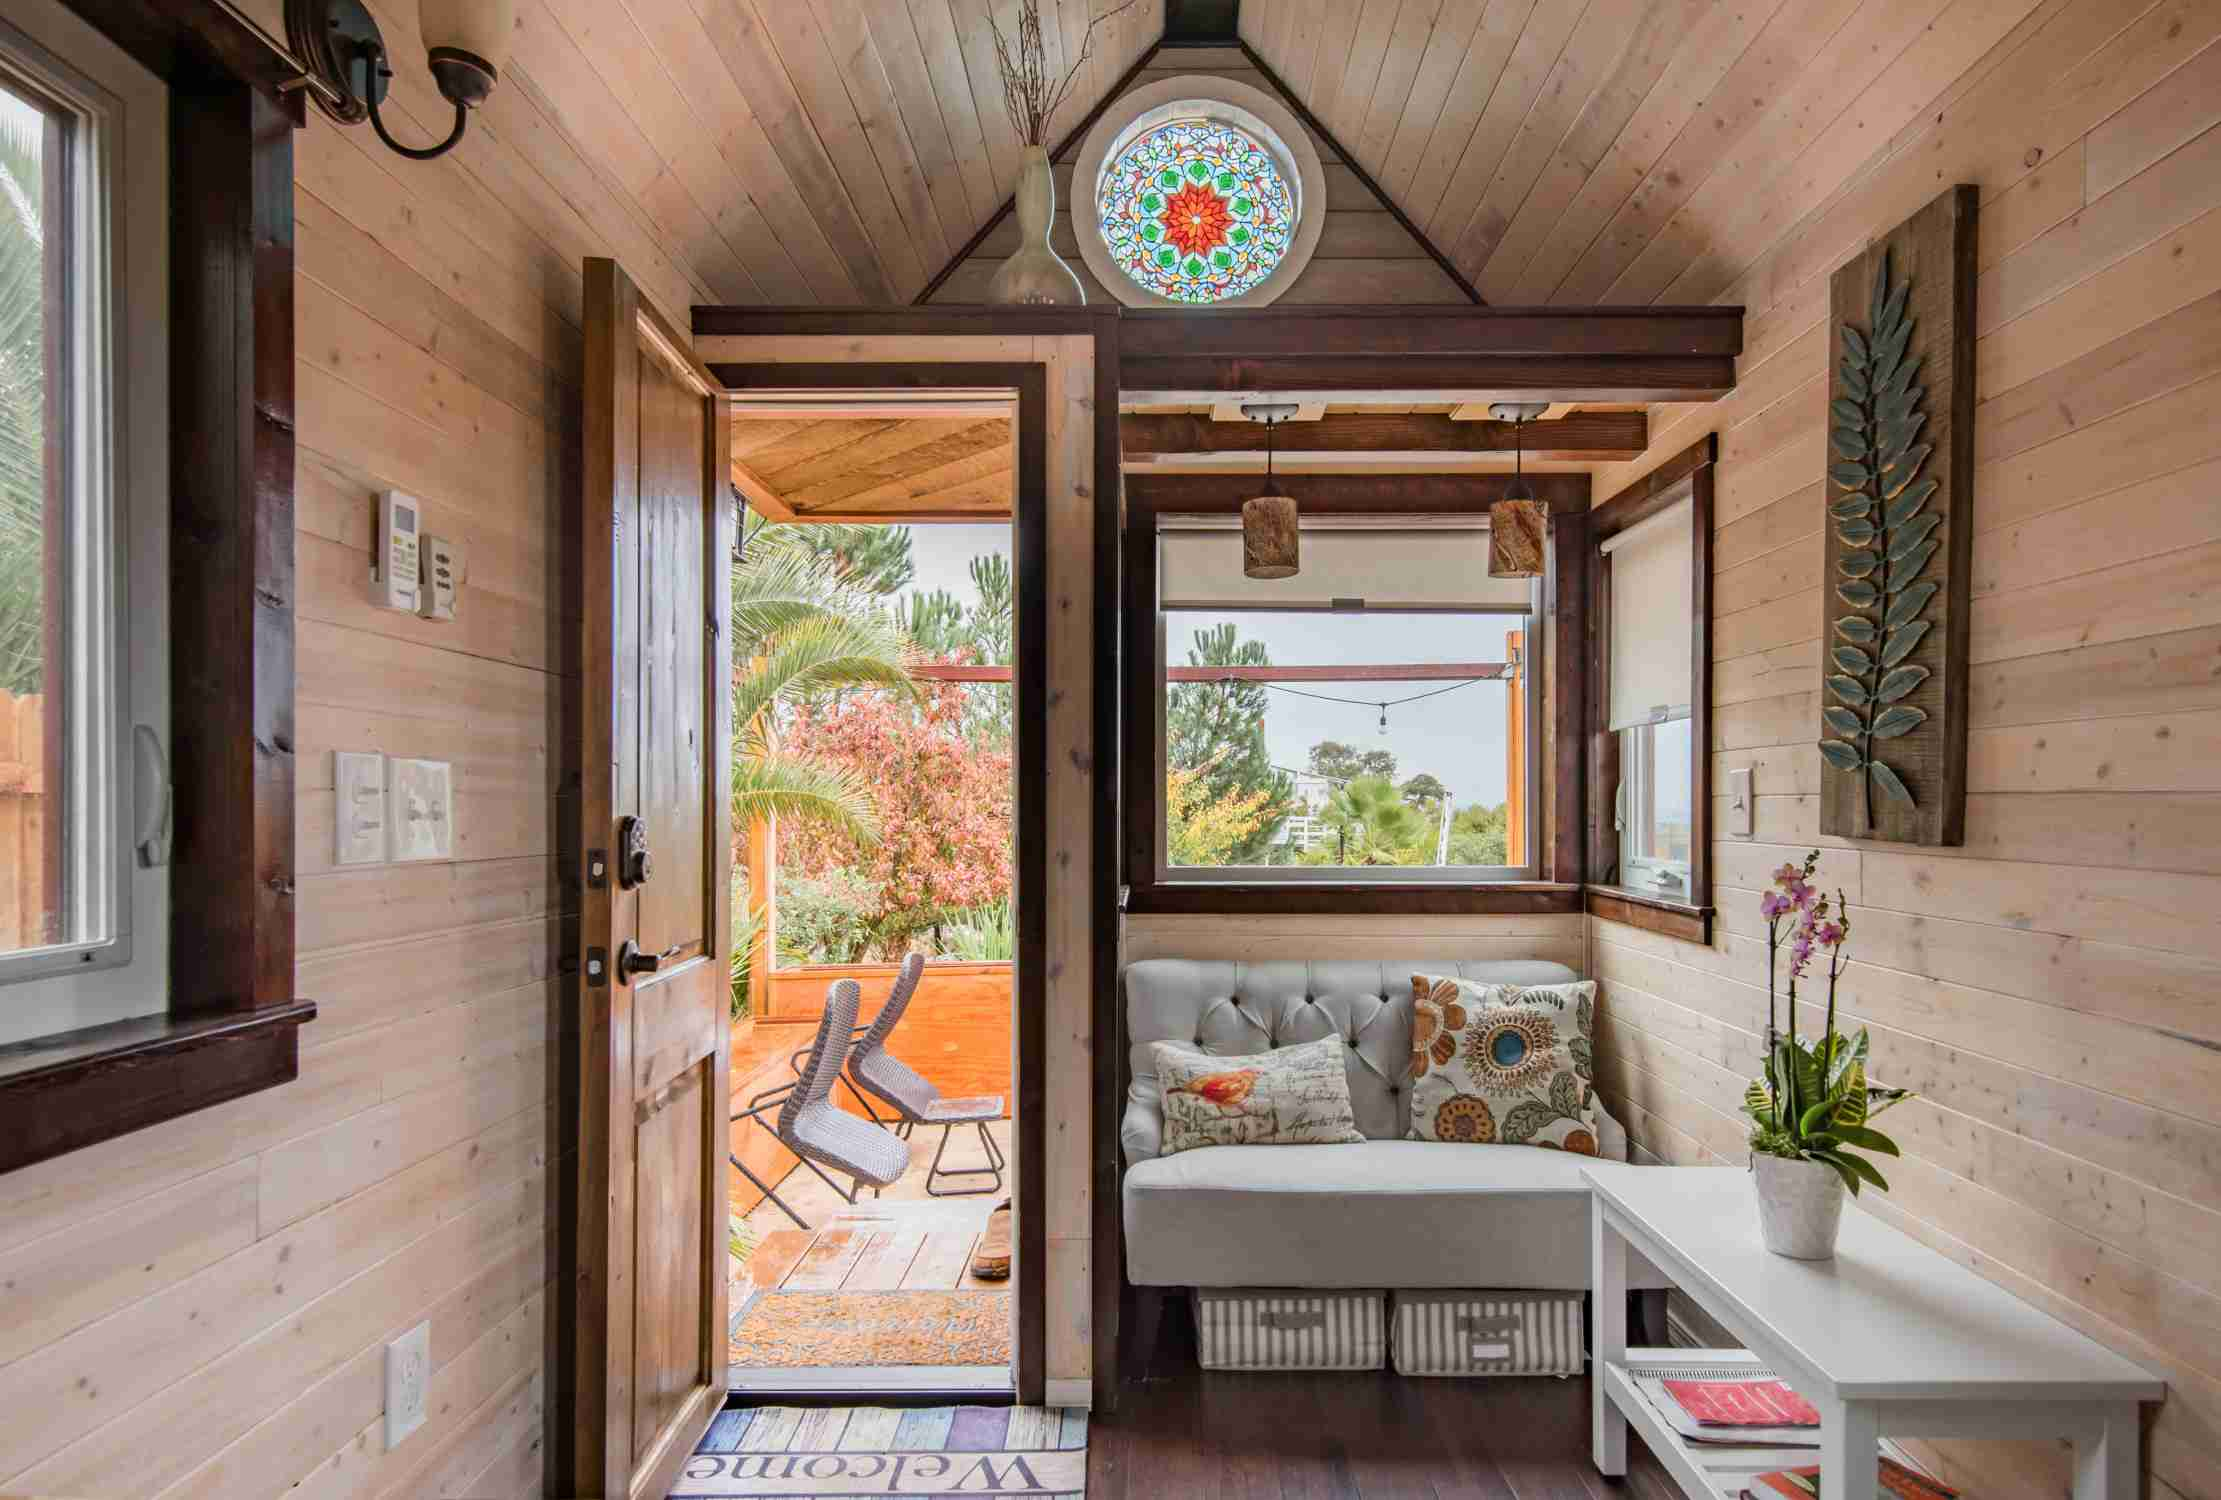 13 Tiny Houses for Rent on Airbnb That Make It Easy to See